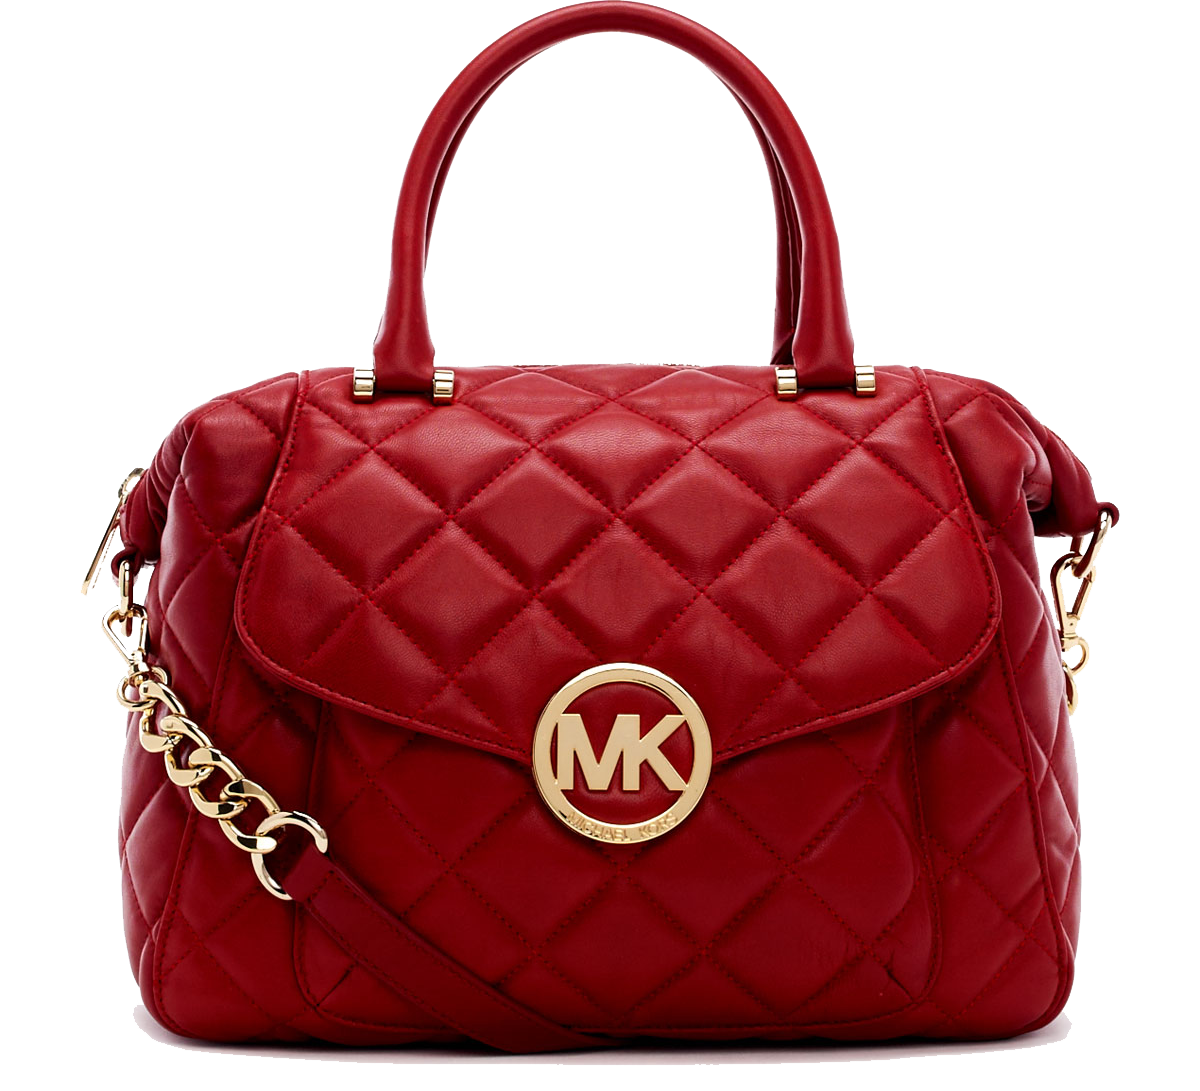 079adc843534cf Michael Michael Kors Large Fulton Quilted Leather Satchel Bag $398  neimanmarcus.com